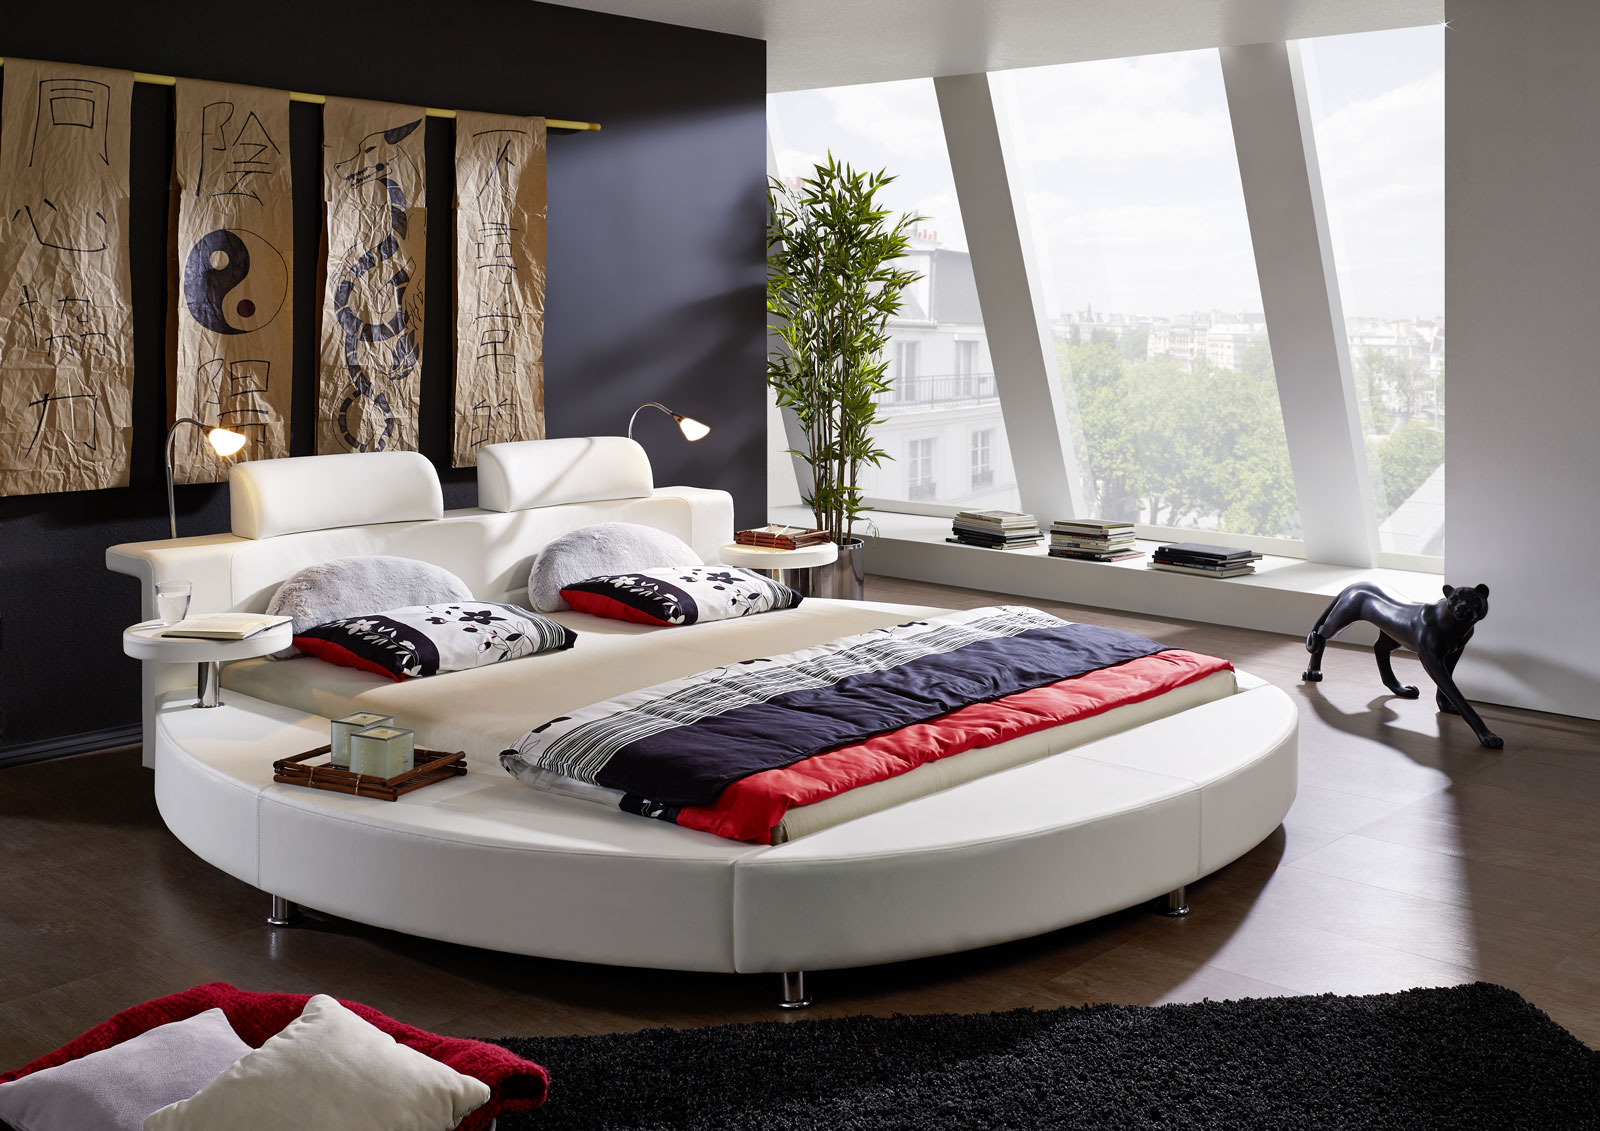 sam rundbett doppelbett 180 x 200 cm 2 leselampen wei classico. Black Bedroom Furniture Sets. Home Design Ideas